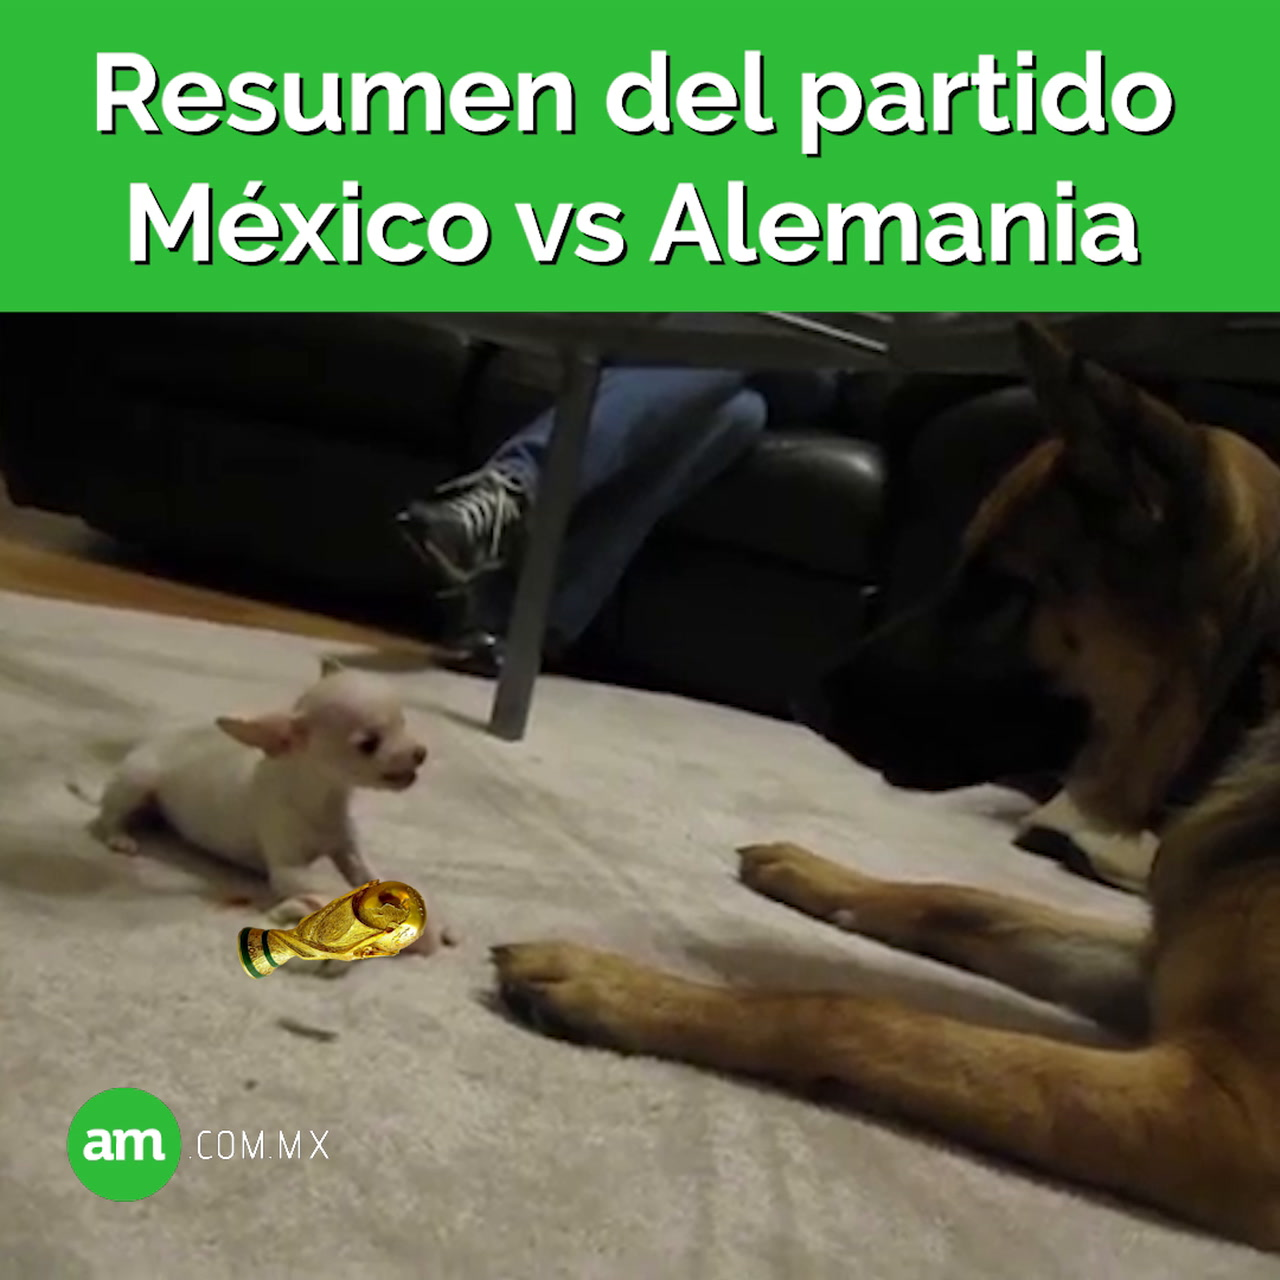 Video: Resumen del partido México vs Alemania